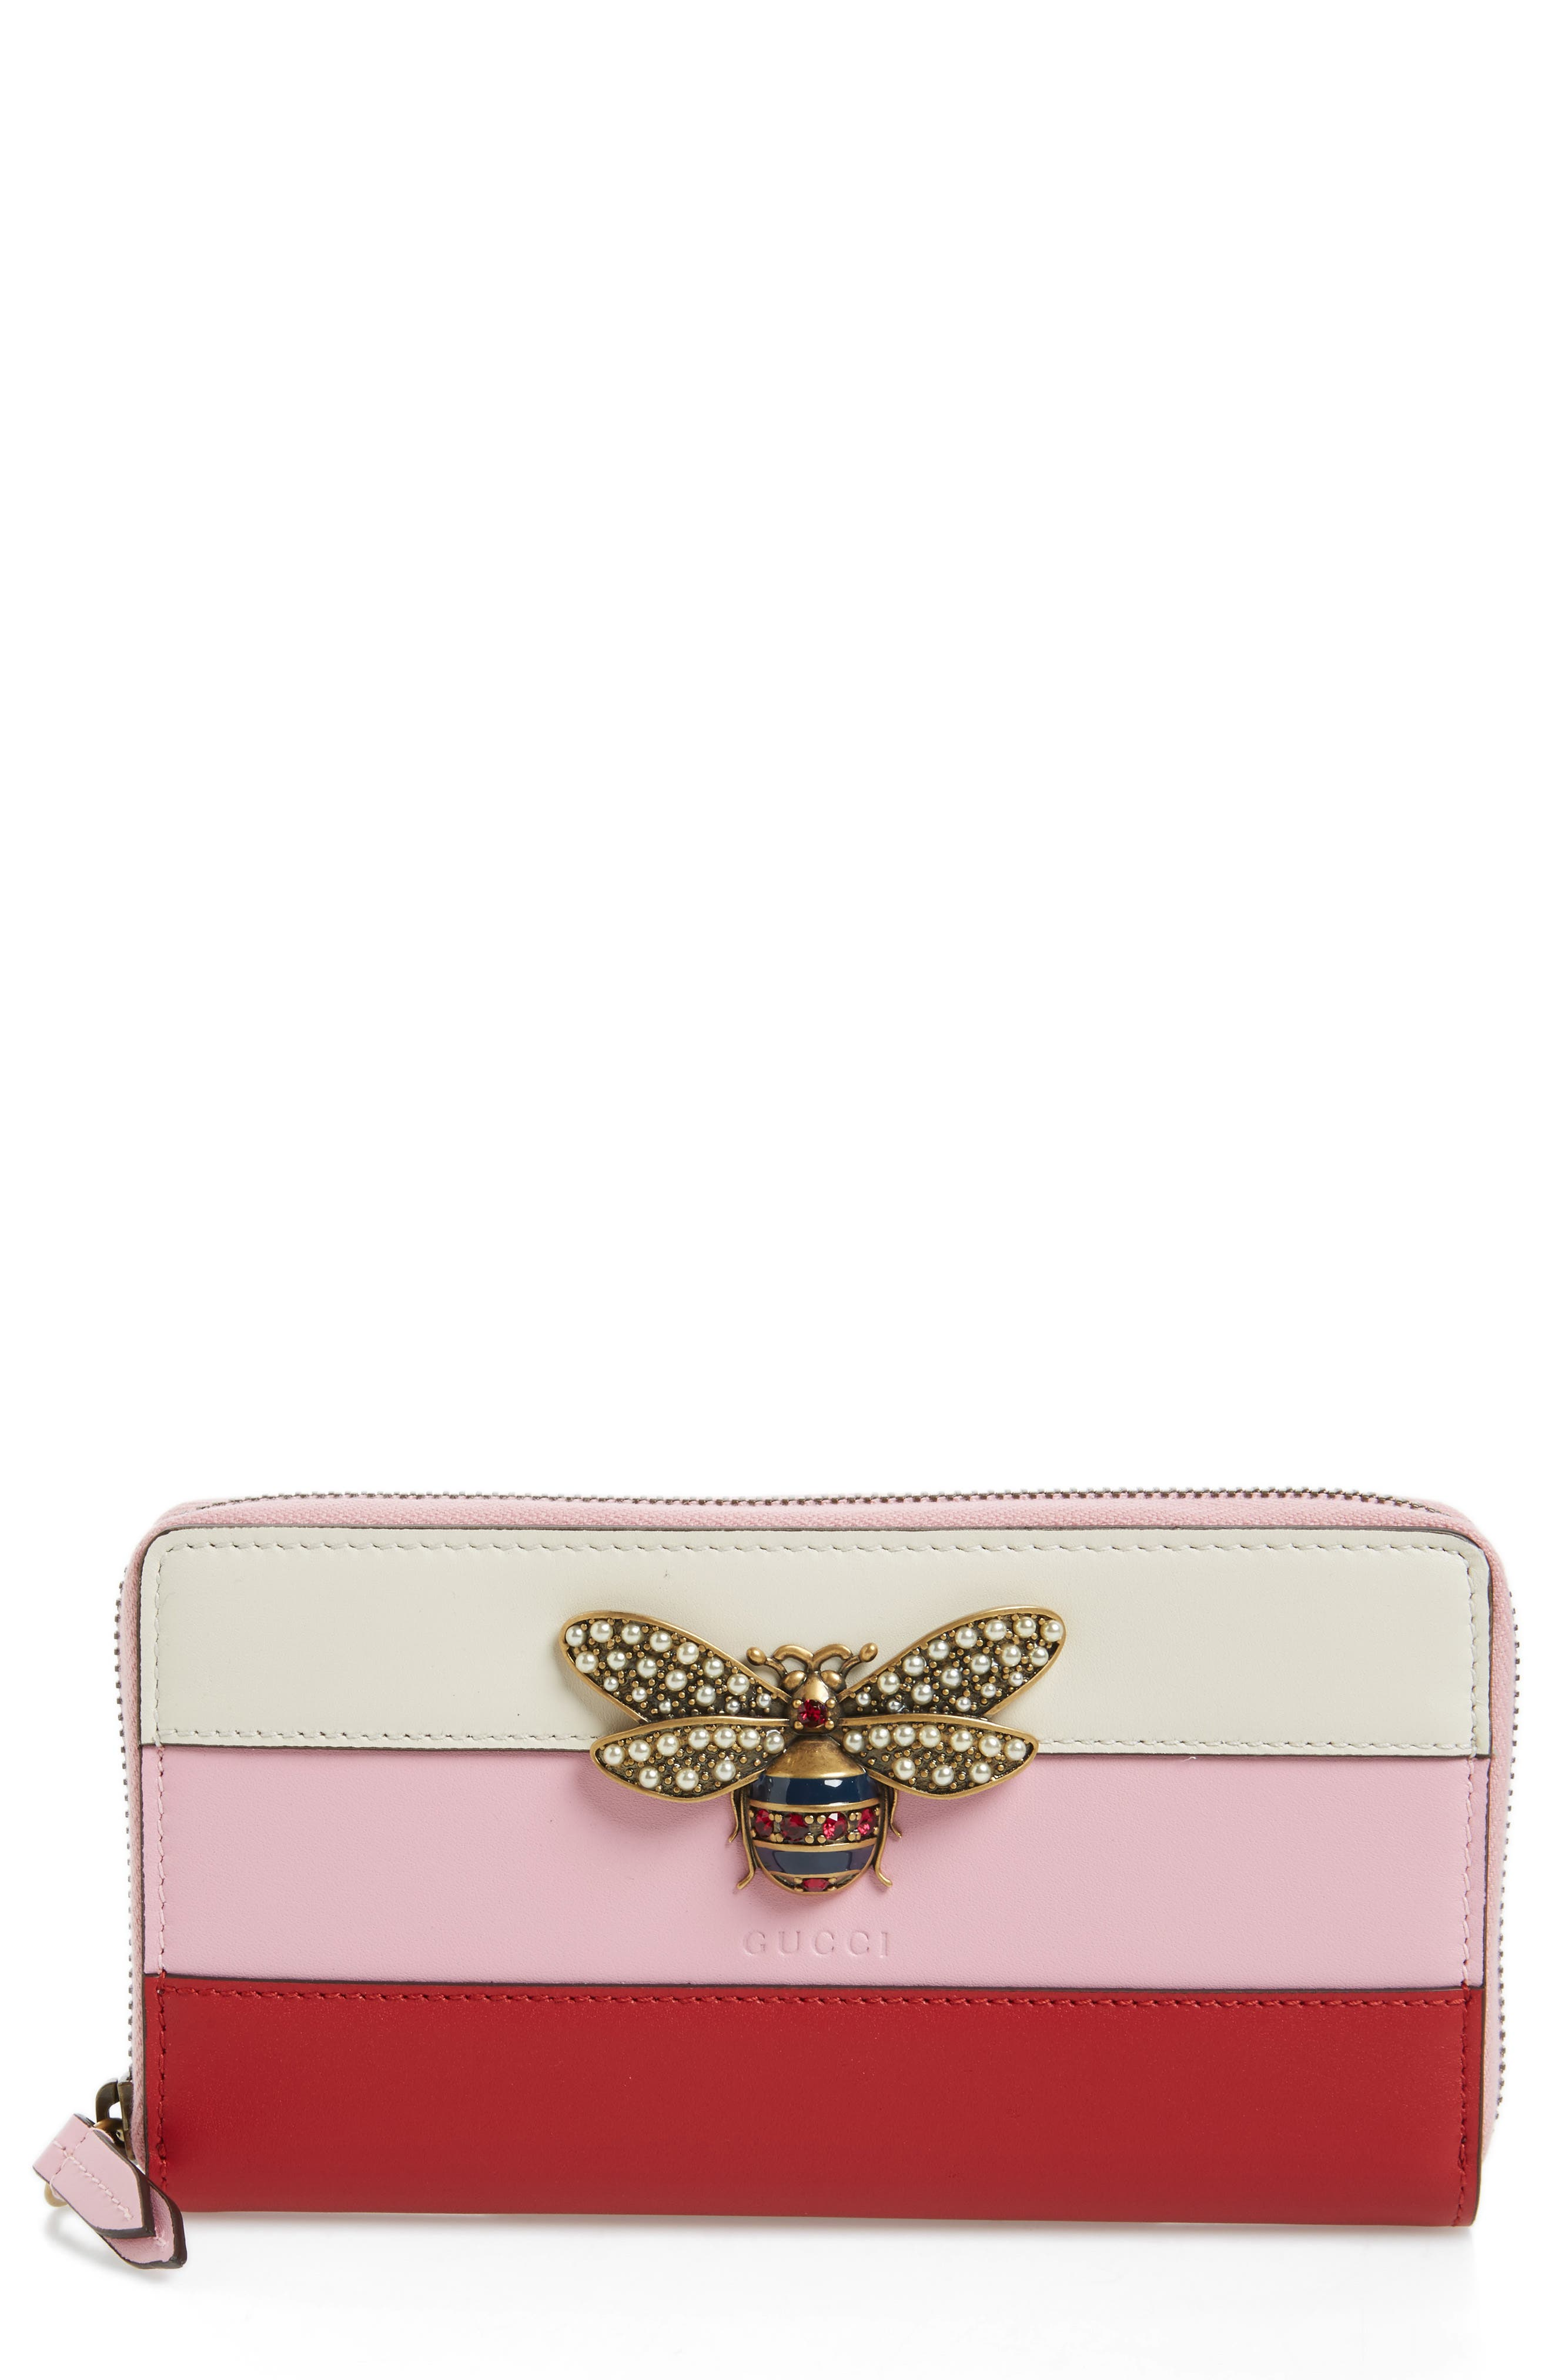 Embellished Bee Leather Zip Around Wallet,                             Main thumbnail 1, color,                             650